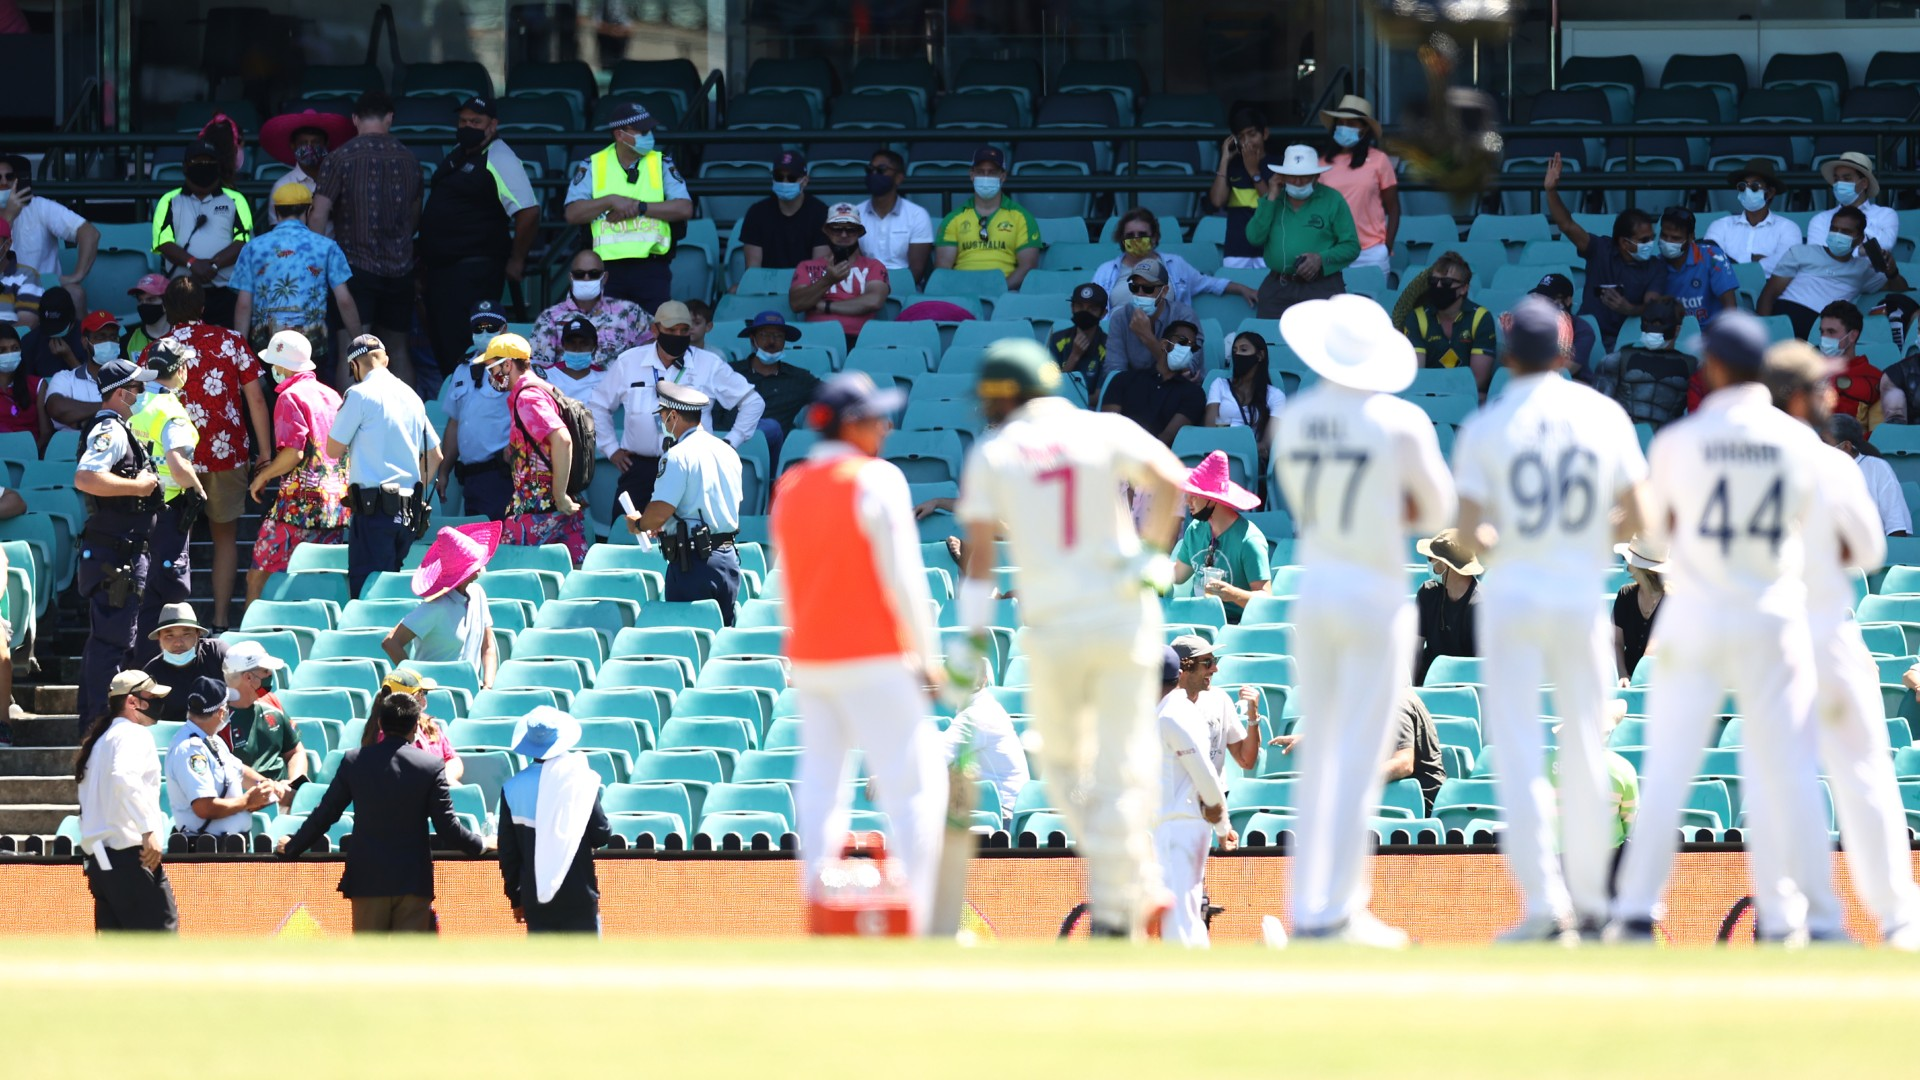 Six people removed from SCG, Cricket Australia issues statement on alleged racist abuse